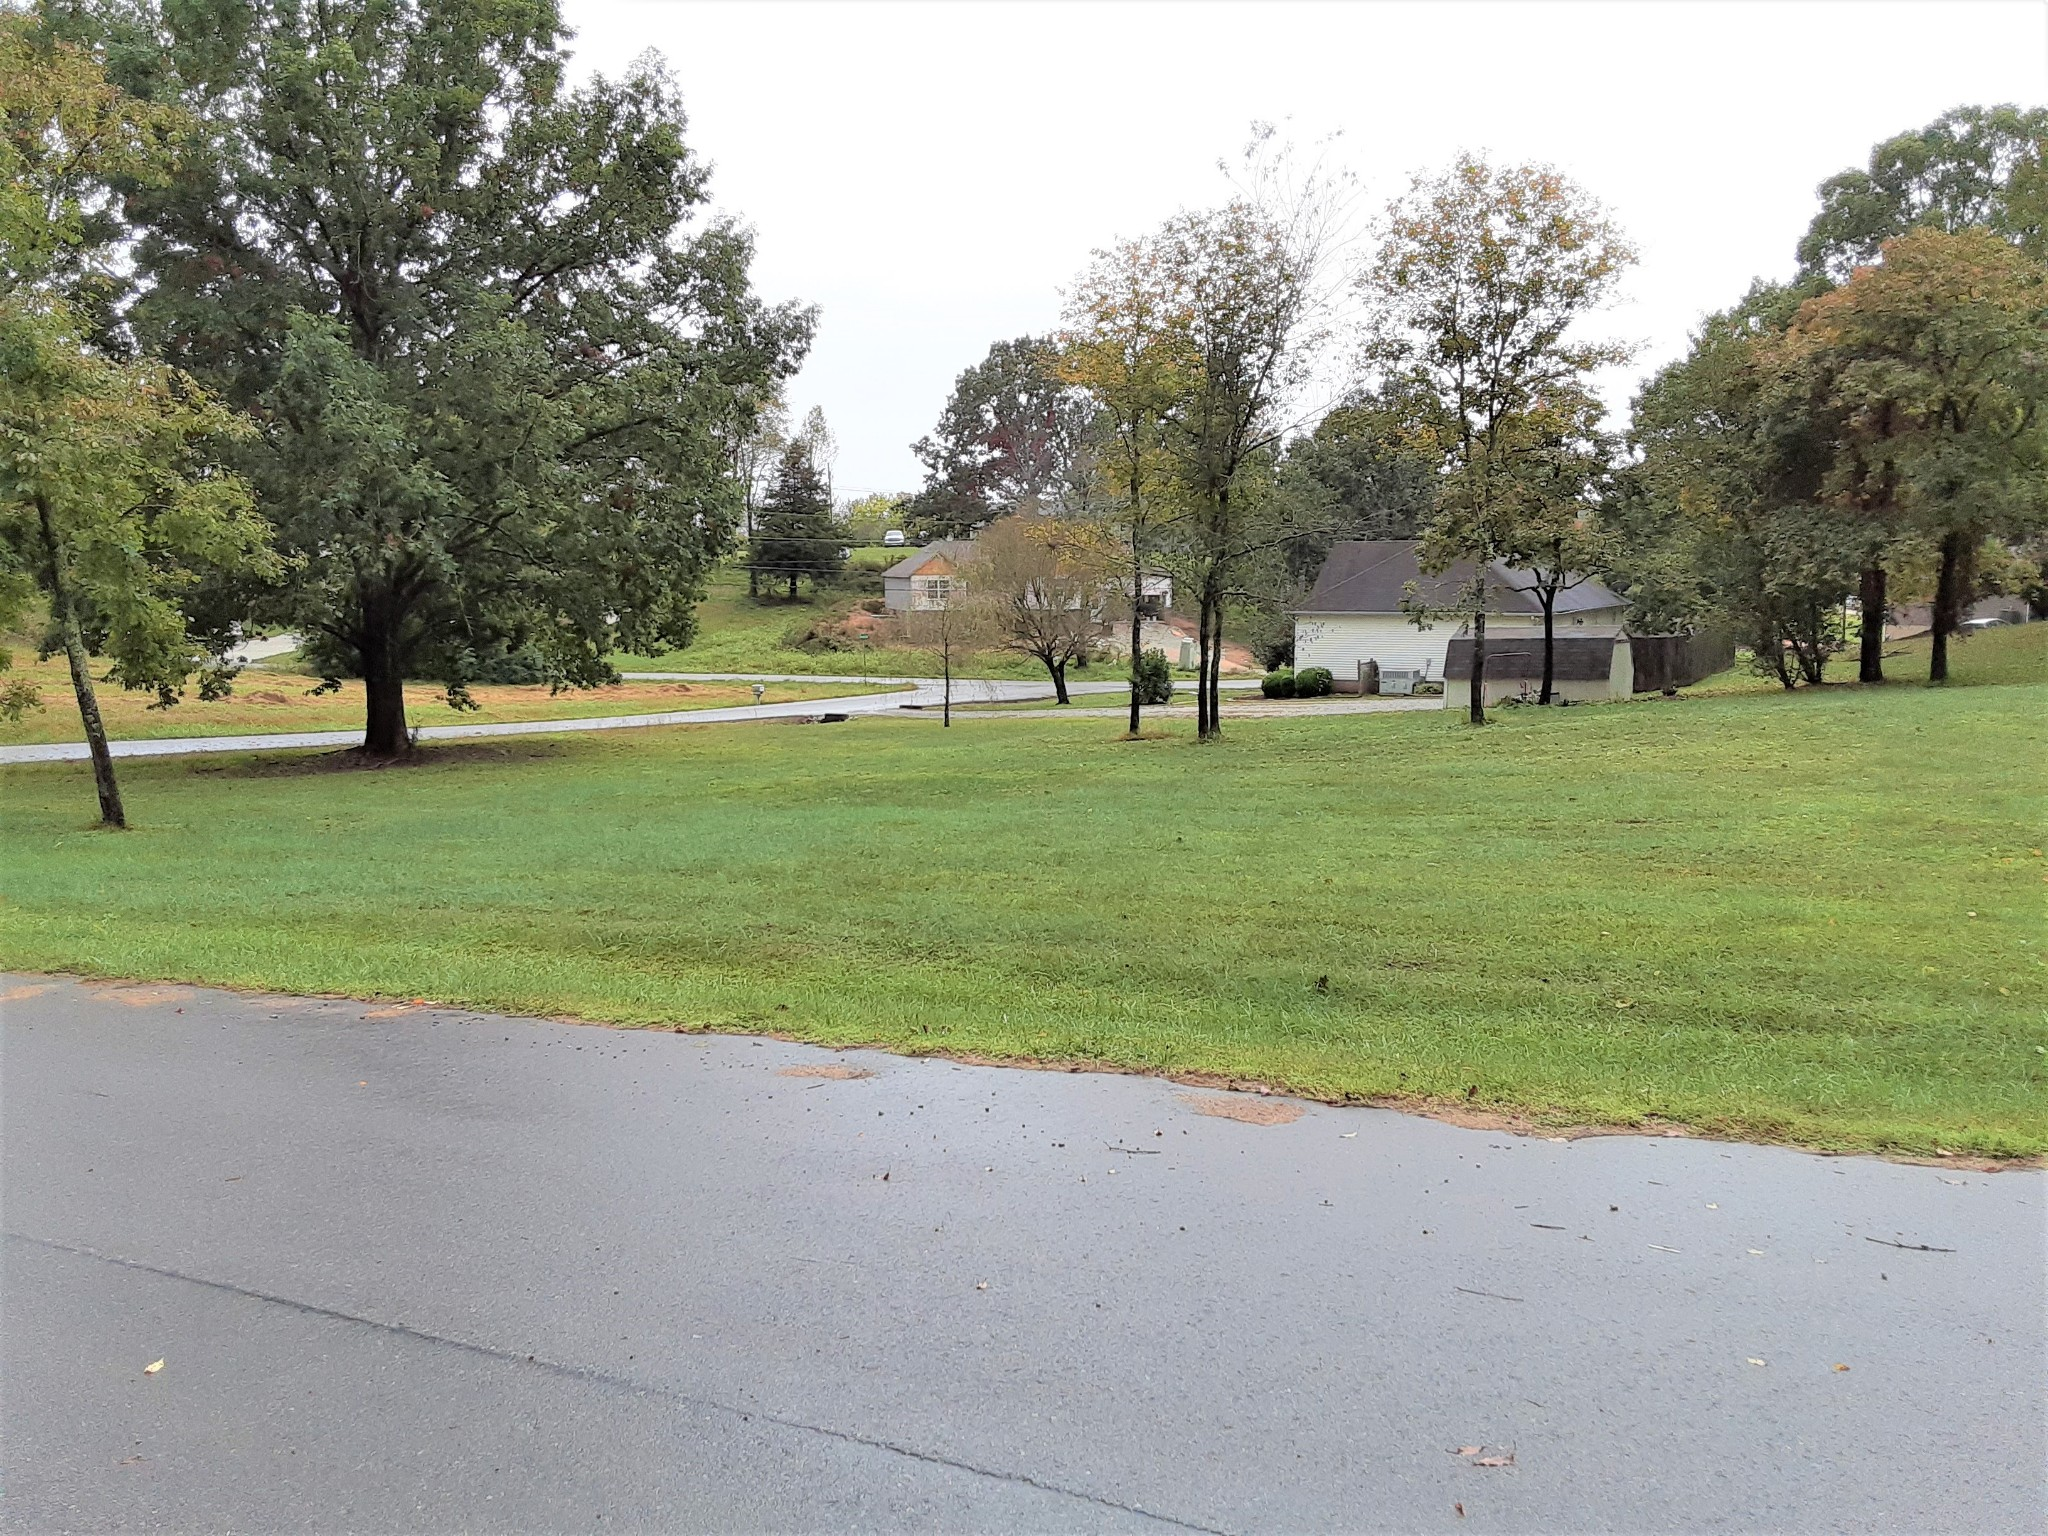 0 Sayles Cir/Sayles Crt, Lawrenceburg, Tennessee 38464, ,Lots And Land,For Sale,0 Sayles Cir/Sayles Crt,2197490